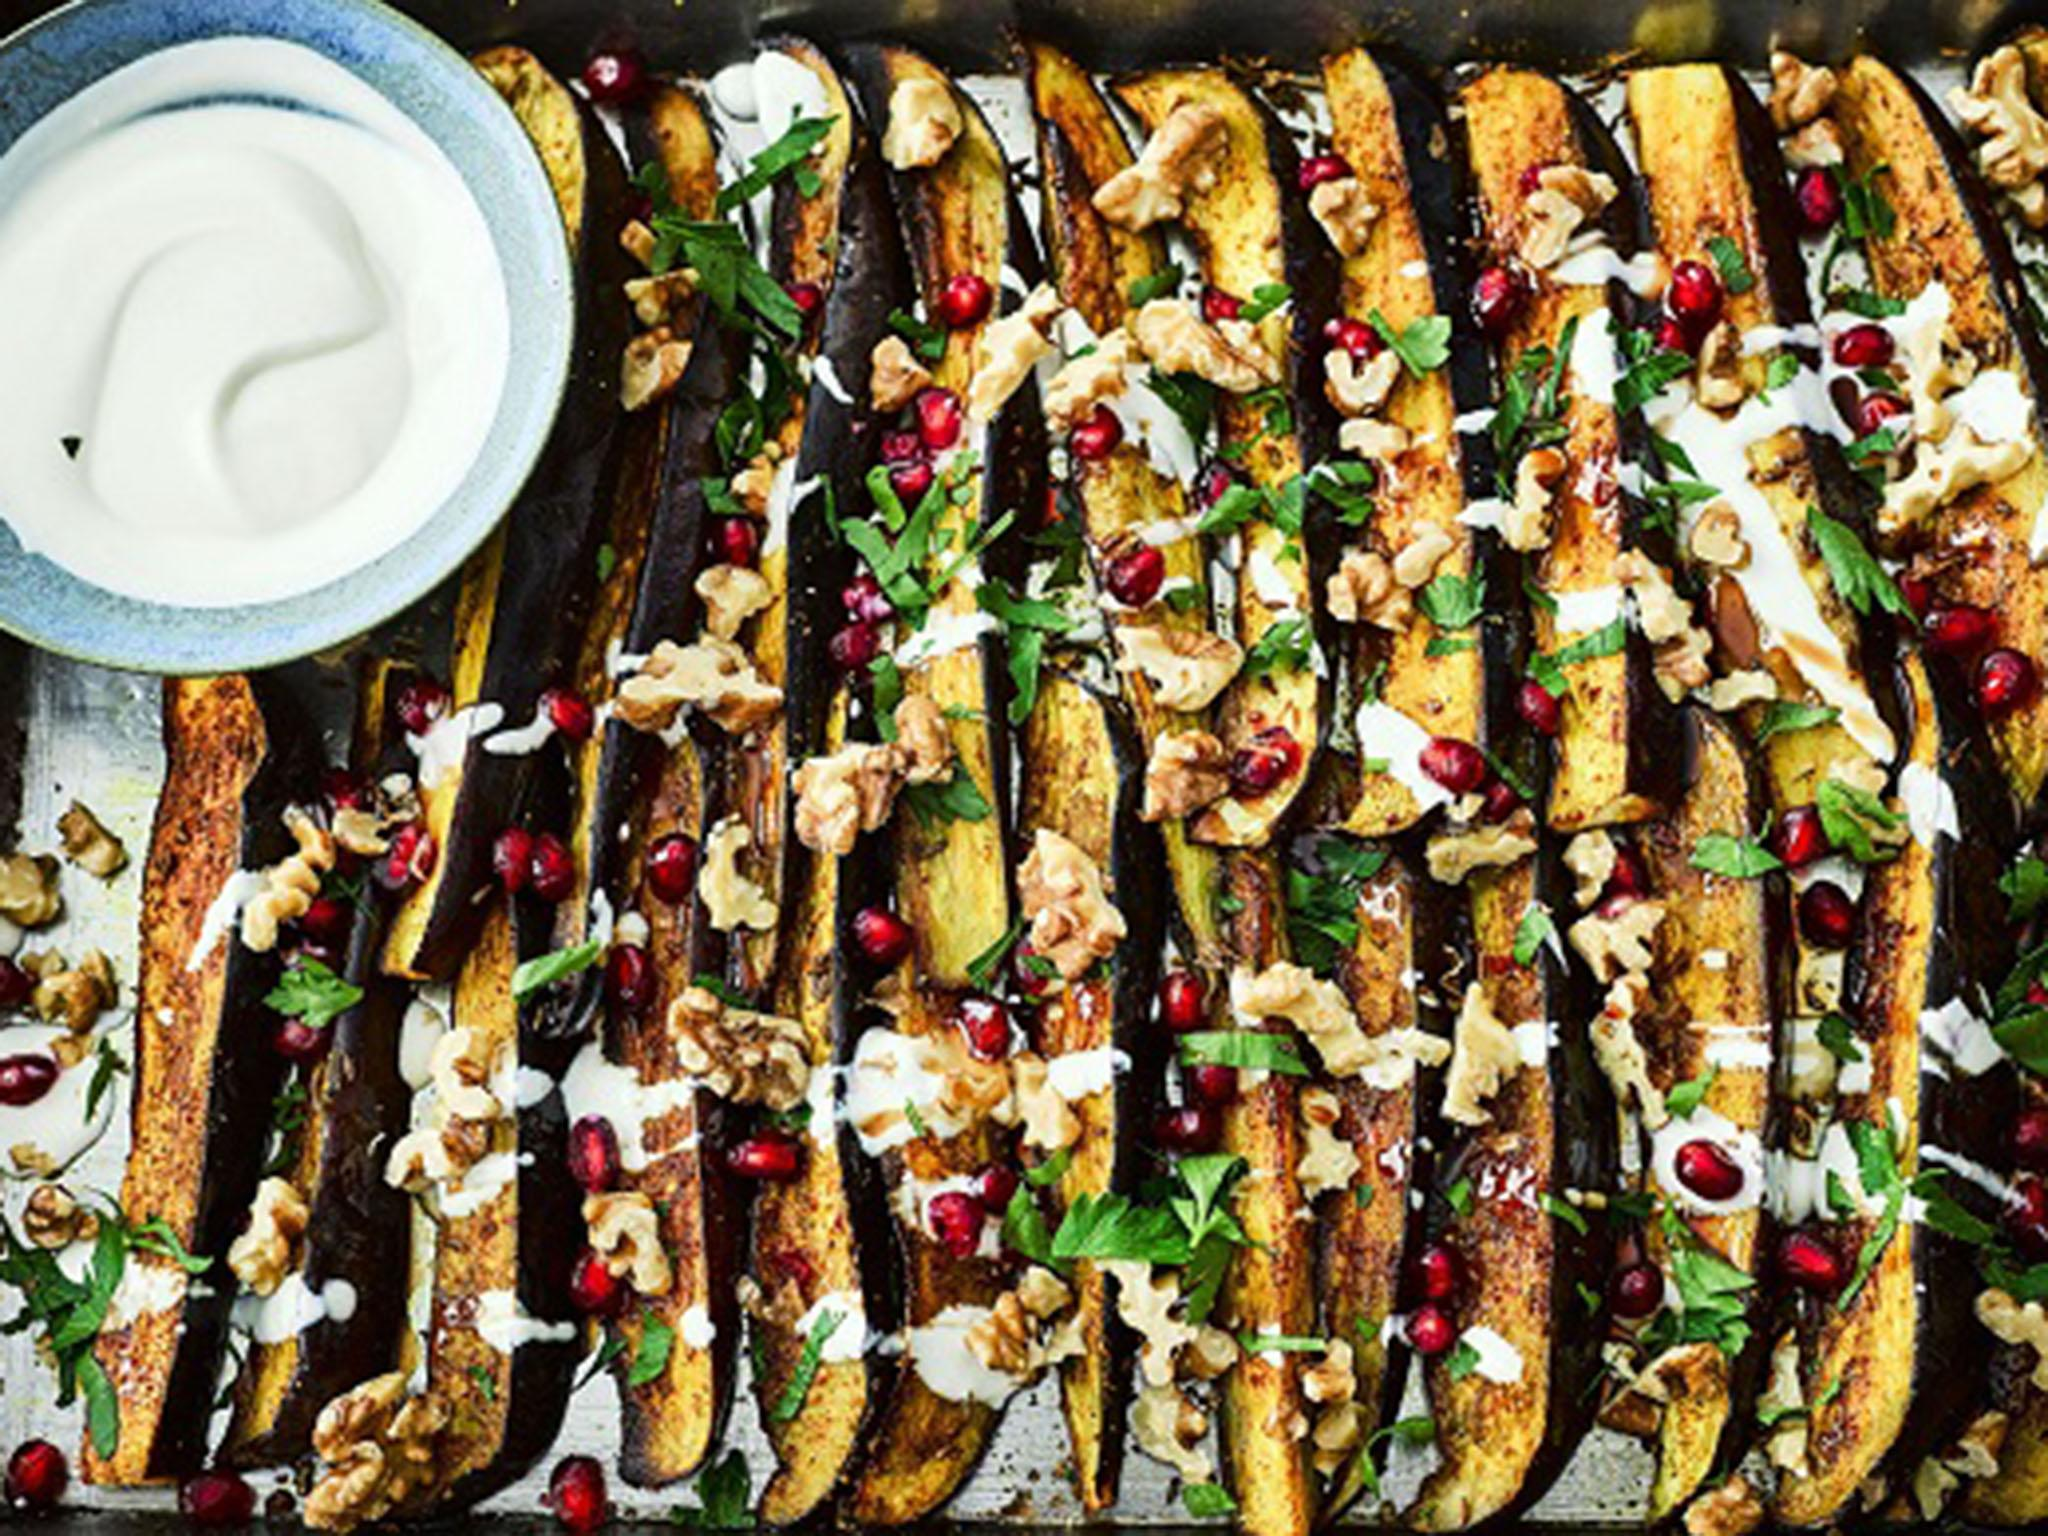 How to make spiced aubergines with walnuts, pomegranate and tahini yoghurt